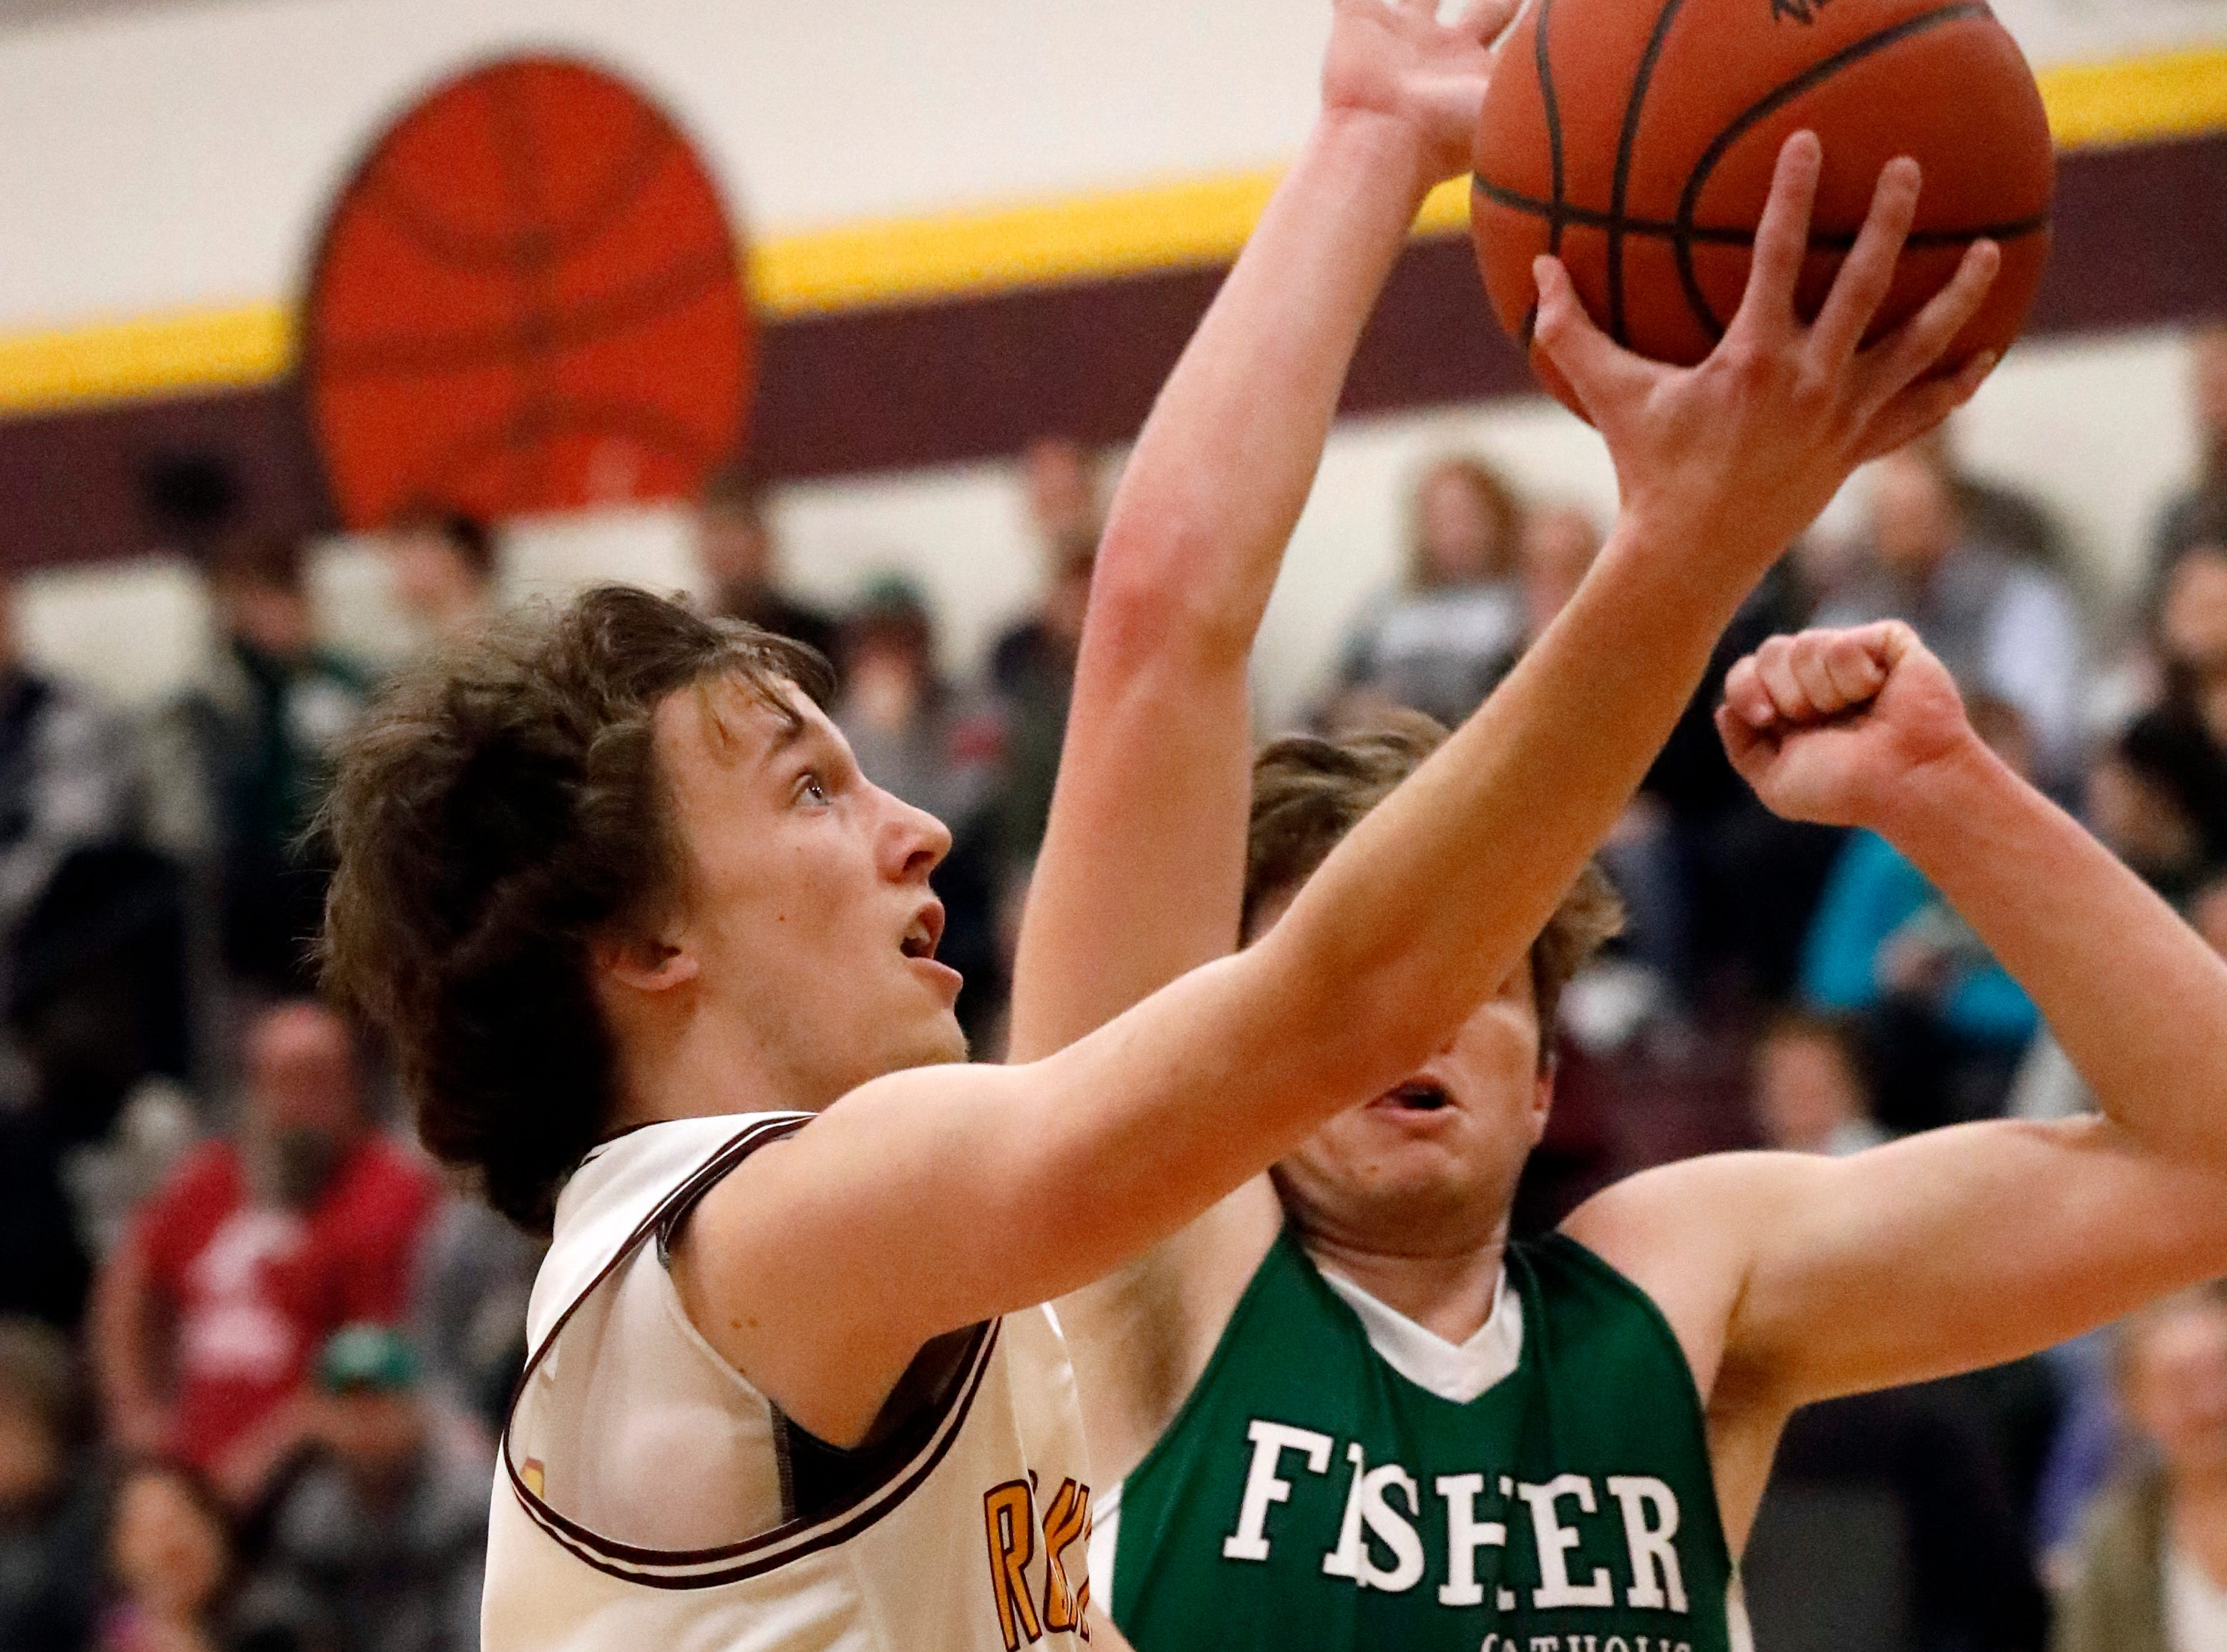 Berne Union defeated Fisher Catholic 58-49 Tuesday night, Jan. 22, 2019, at Berne Union High School in Sugar Grove.